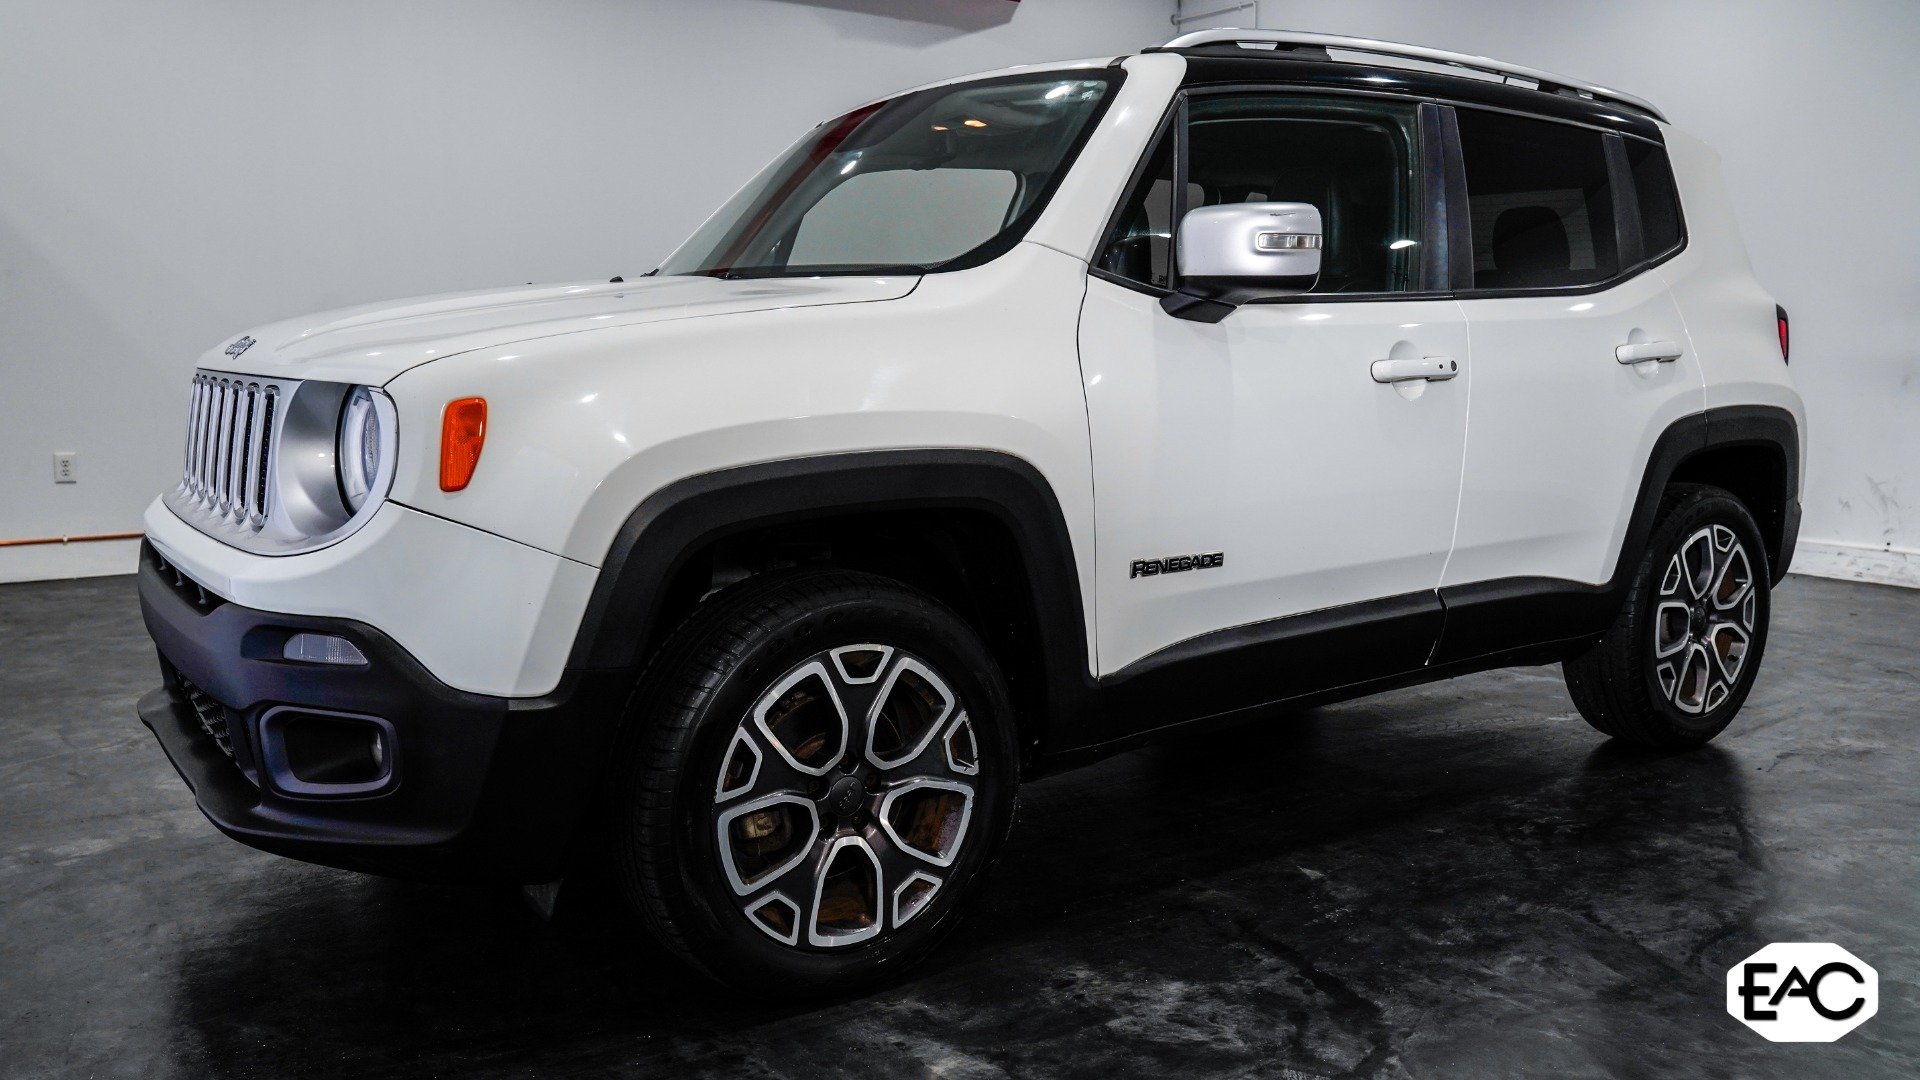 Used 2015 Jeep Renegade Limited for sale $12,990 at Empire Auto Collection in Warren MI 48091 1